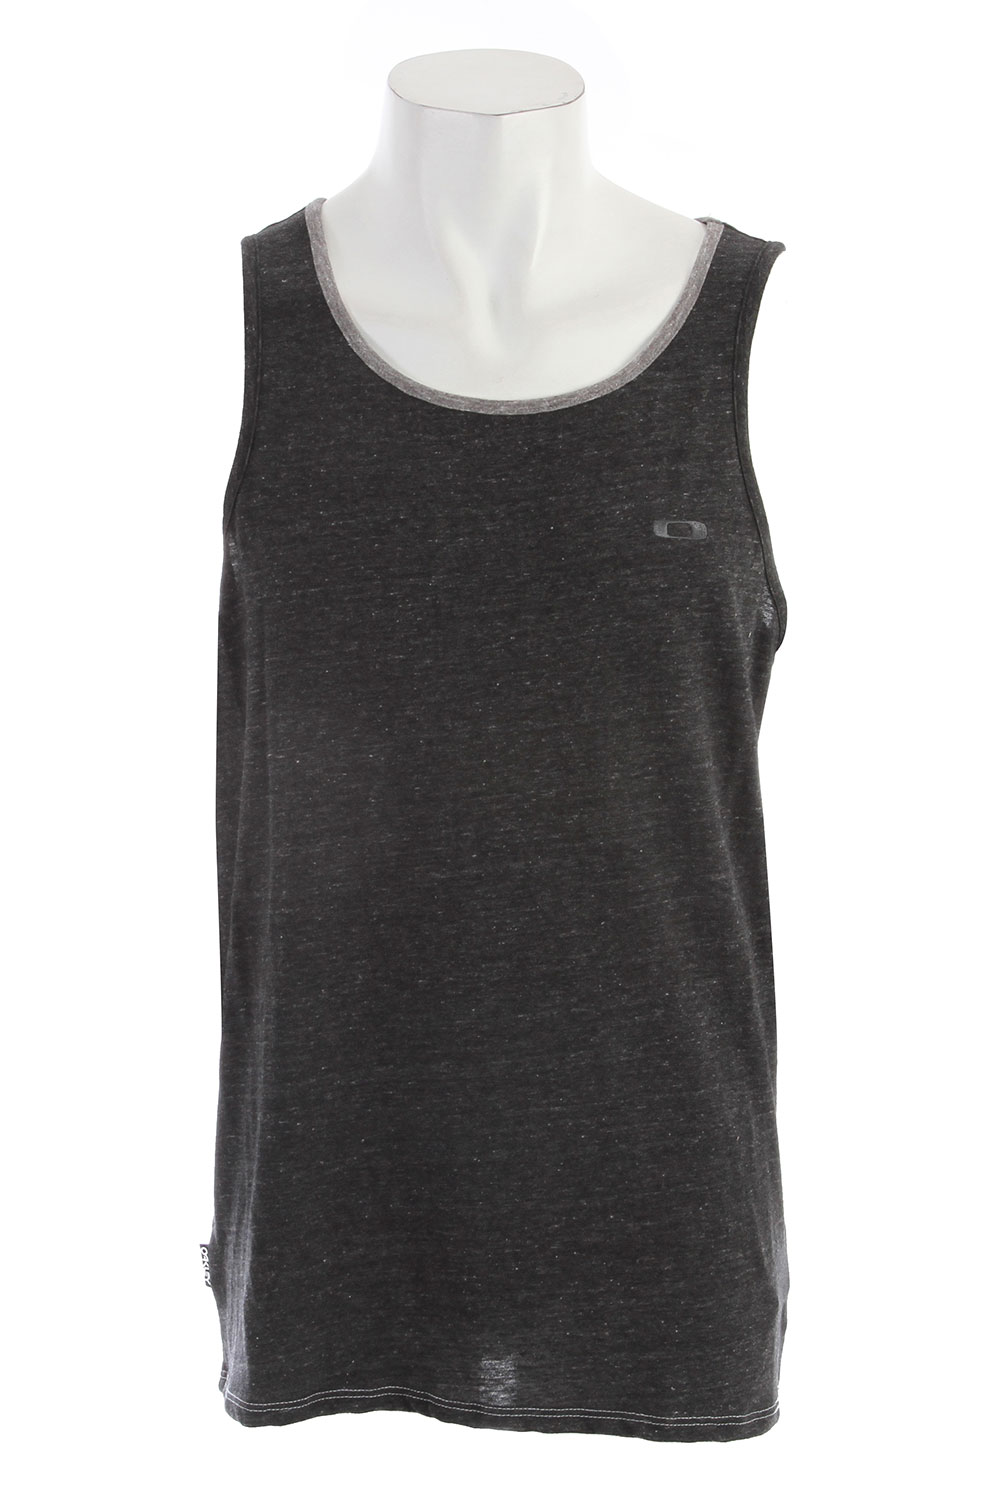 Surf Tri-blend tank top with contrast self binding at sleeves and neck, front logo embroidery and side flagKey Features of the Oakley Maldives Tank: 50% cotton 37% polyester 13% rayon - $17.95